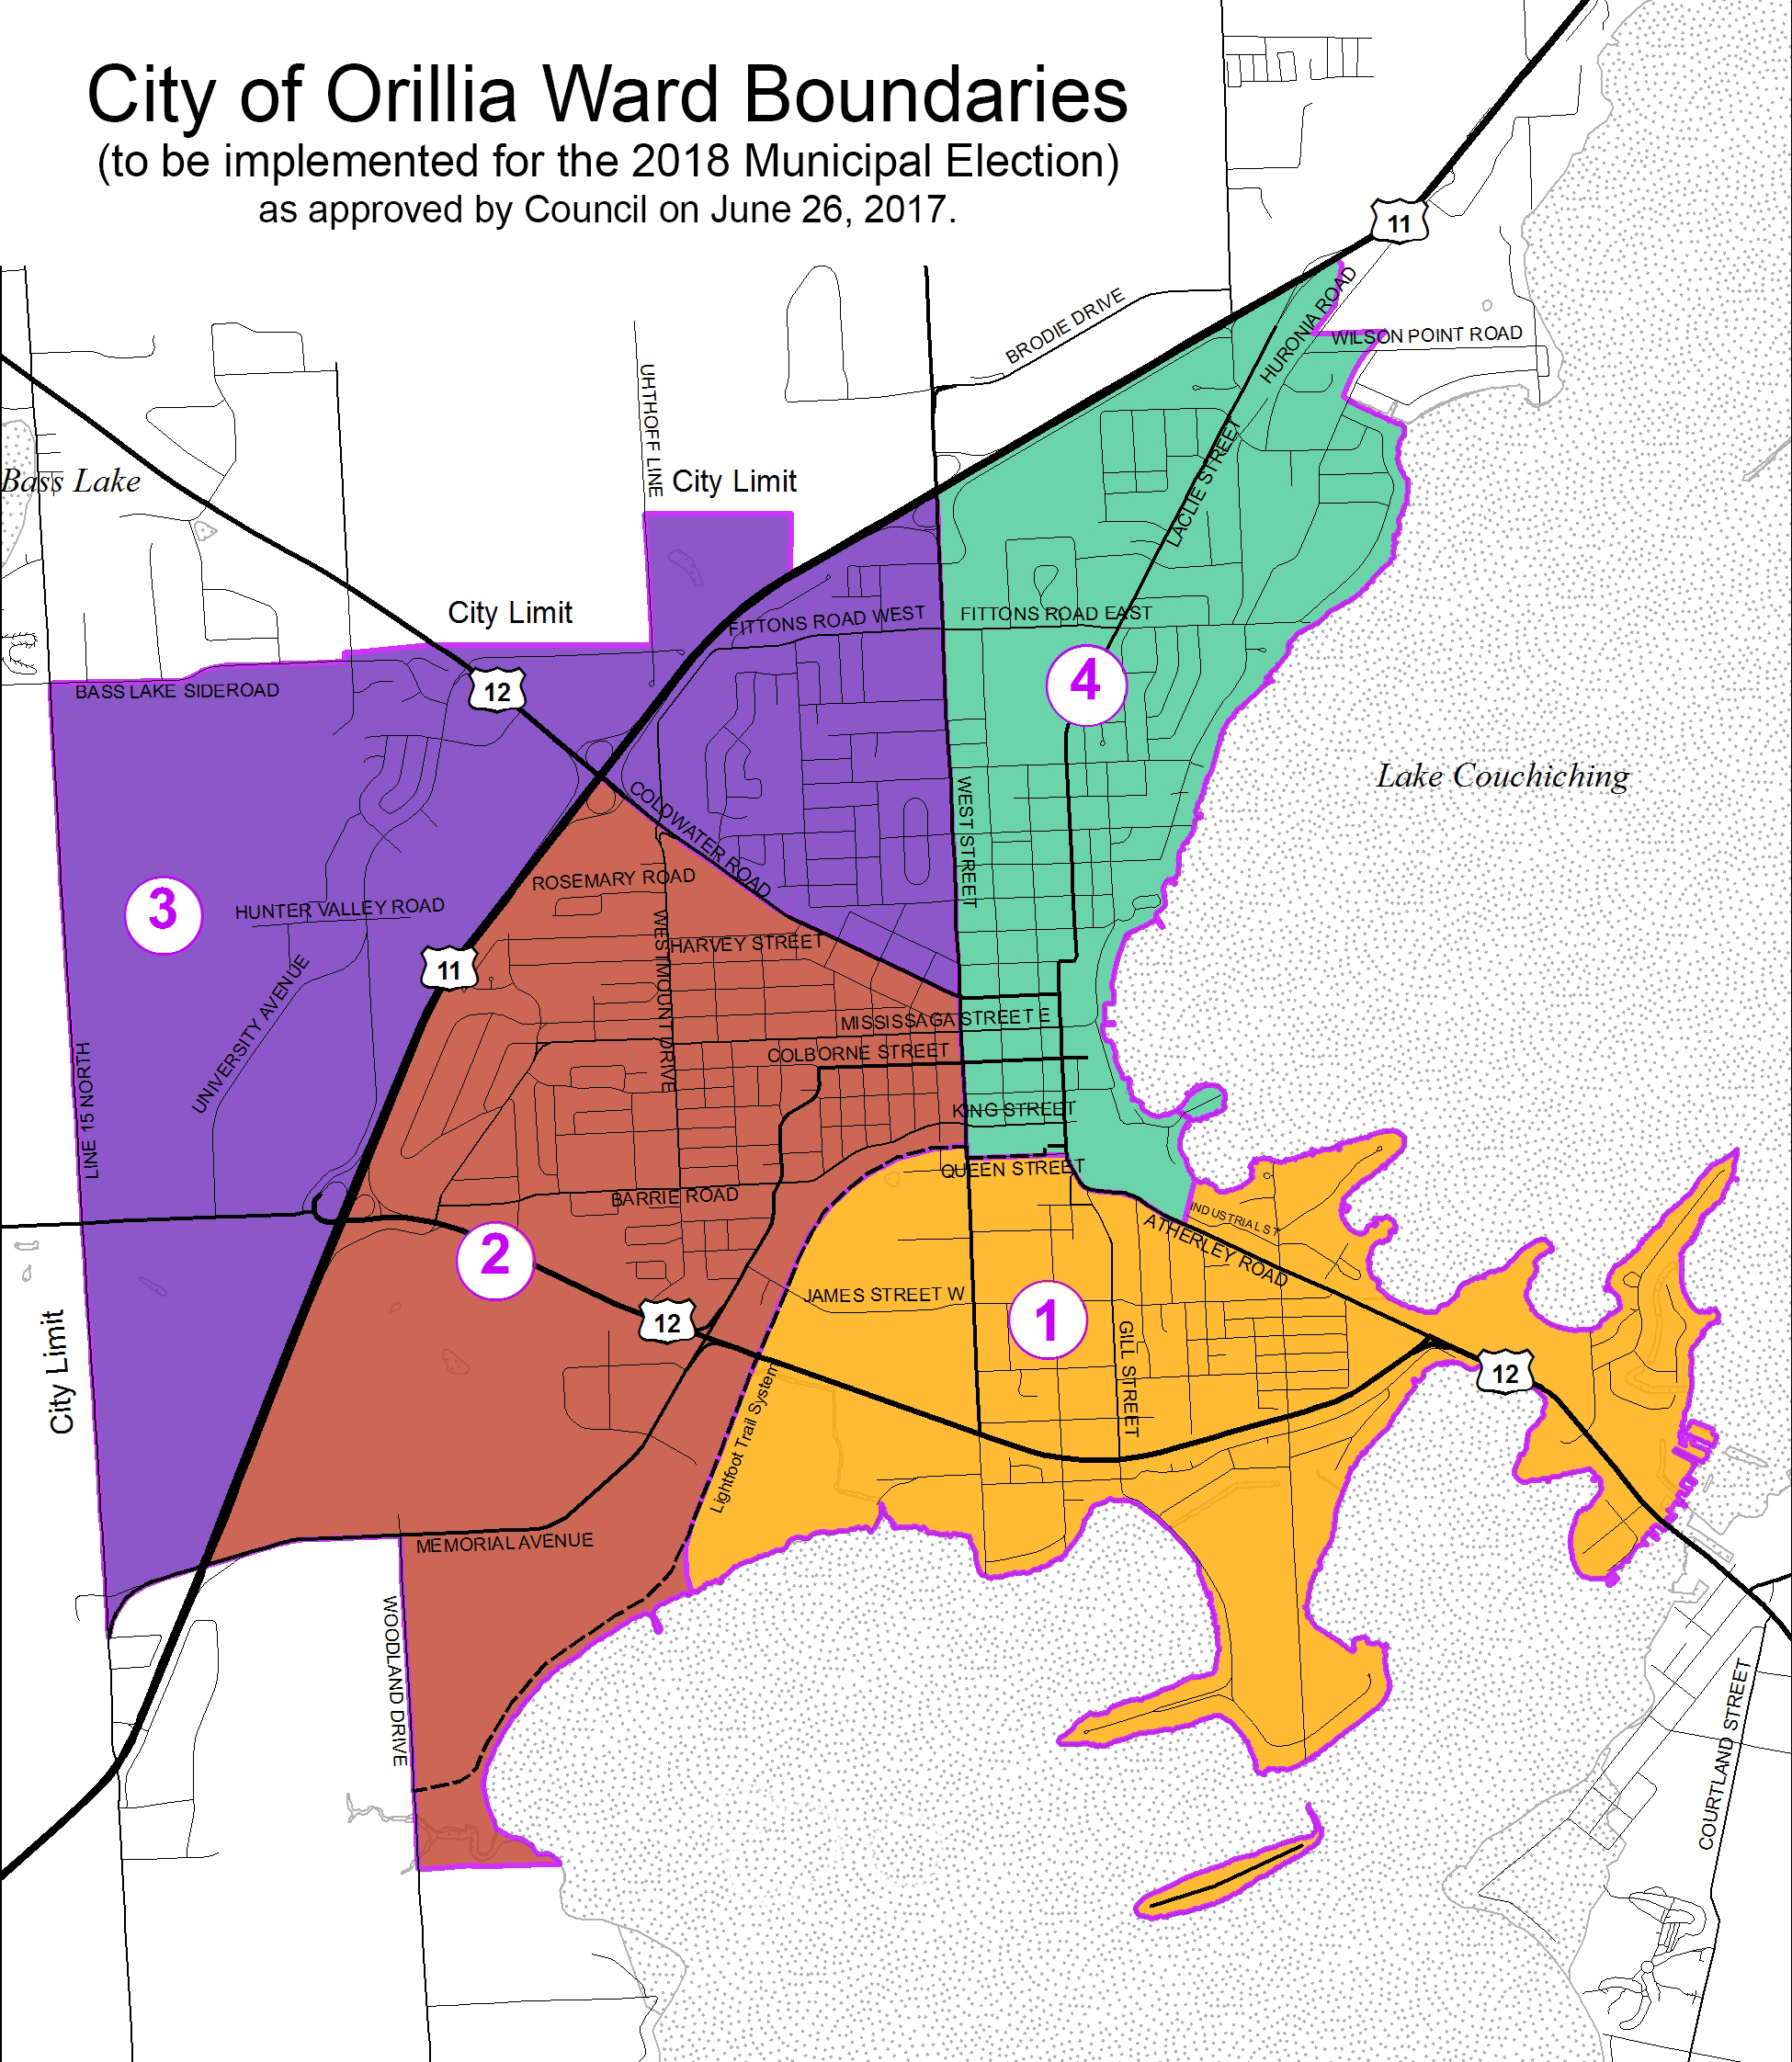 Map of City of Orillia with ward boundaries indicated.